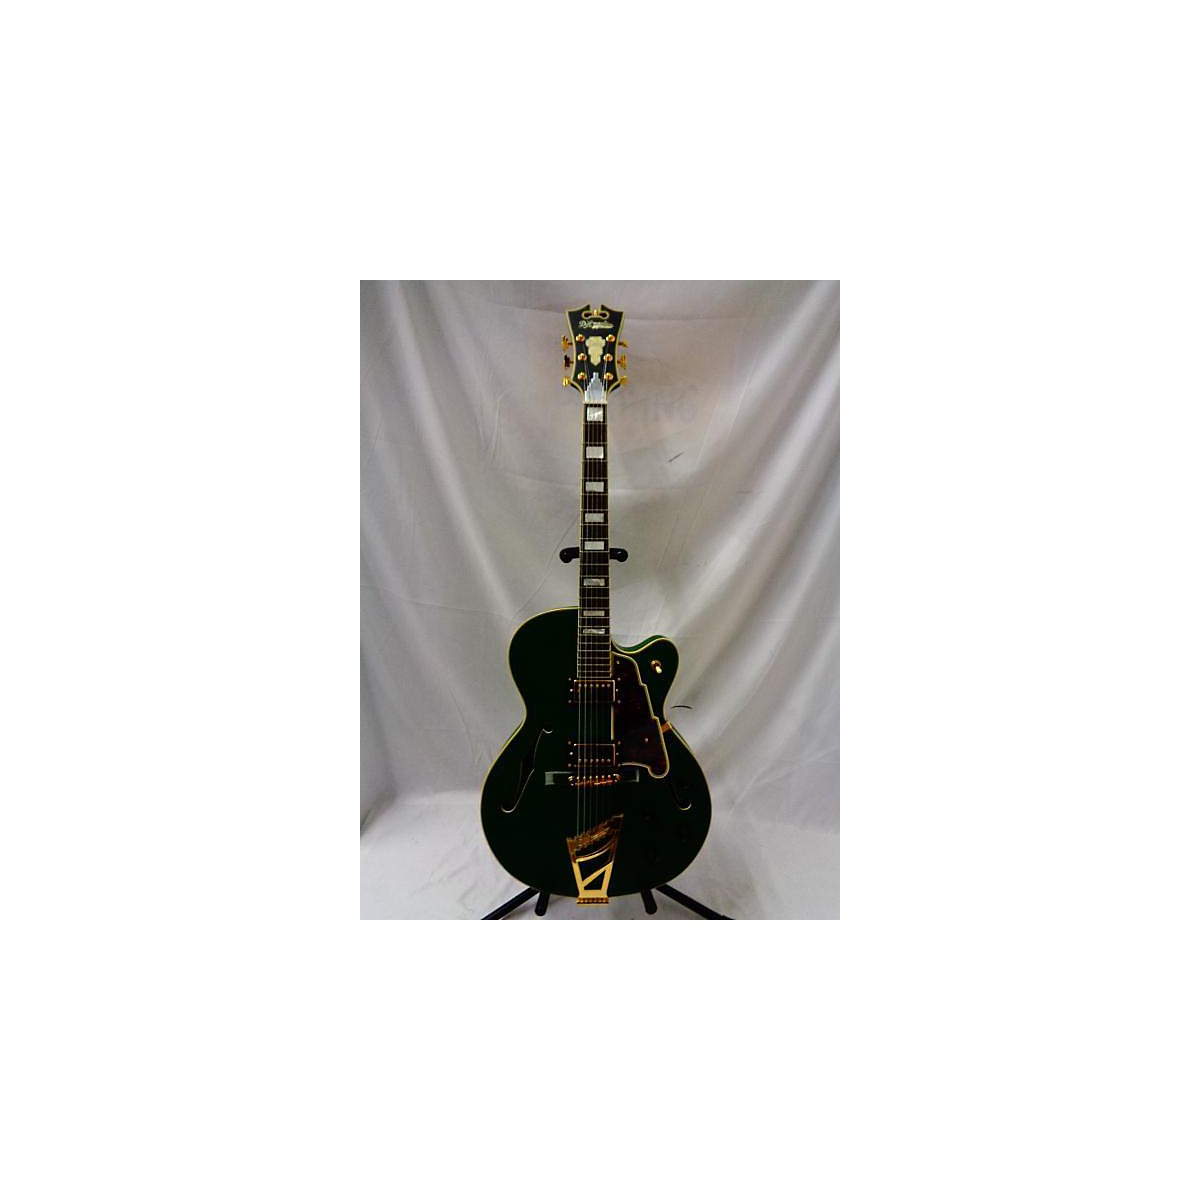 D'Angelico Deluxe Series DH Hollowbody Hollow Body Electric Guitar